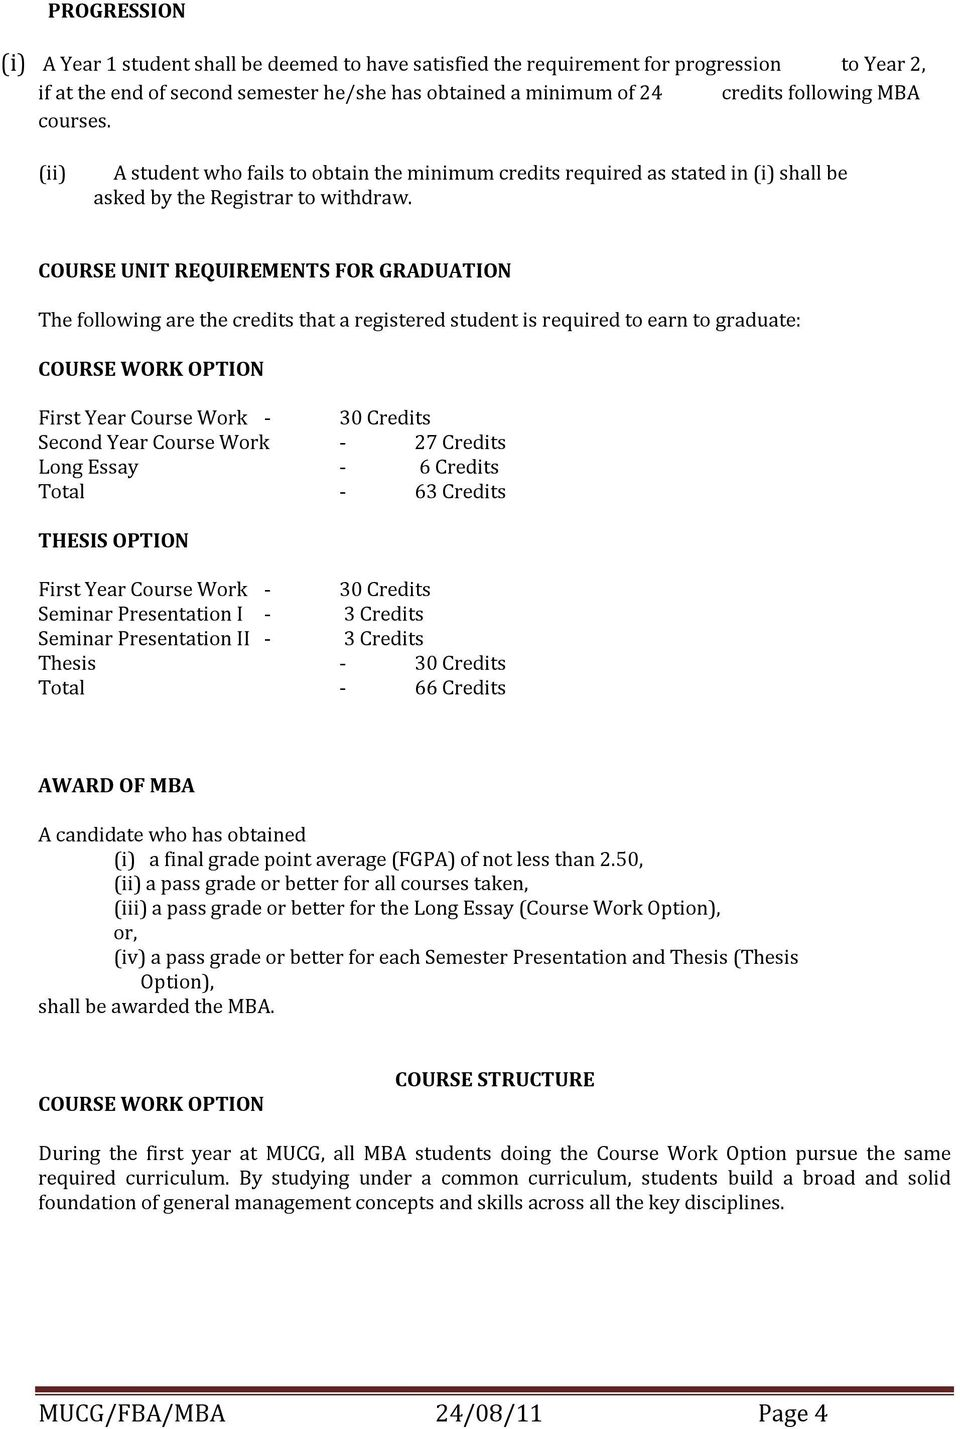 COURSE UNIT REQUIREMENTS FOR GRADUATION The following are the credits that a registered student is required to earn to graduate: COURSE WORK OPTION First Year Course Work - 30 Second Year Course Work